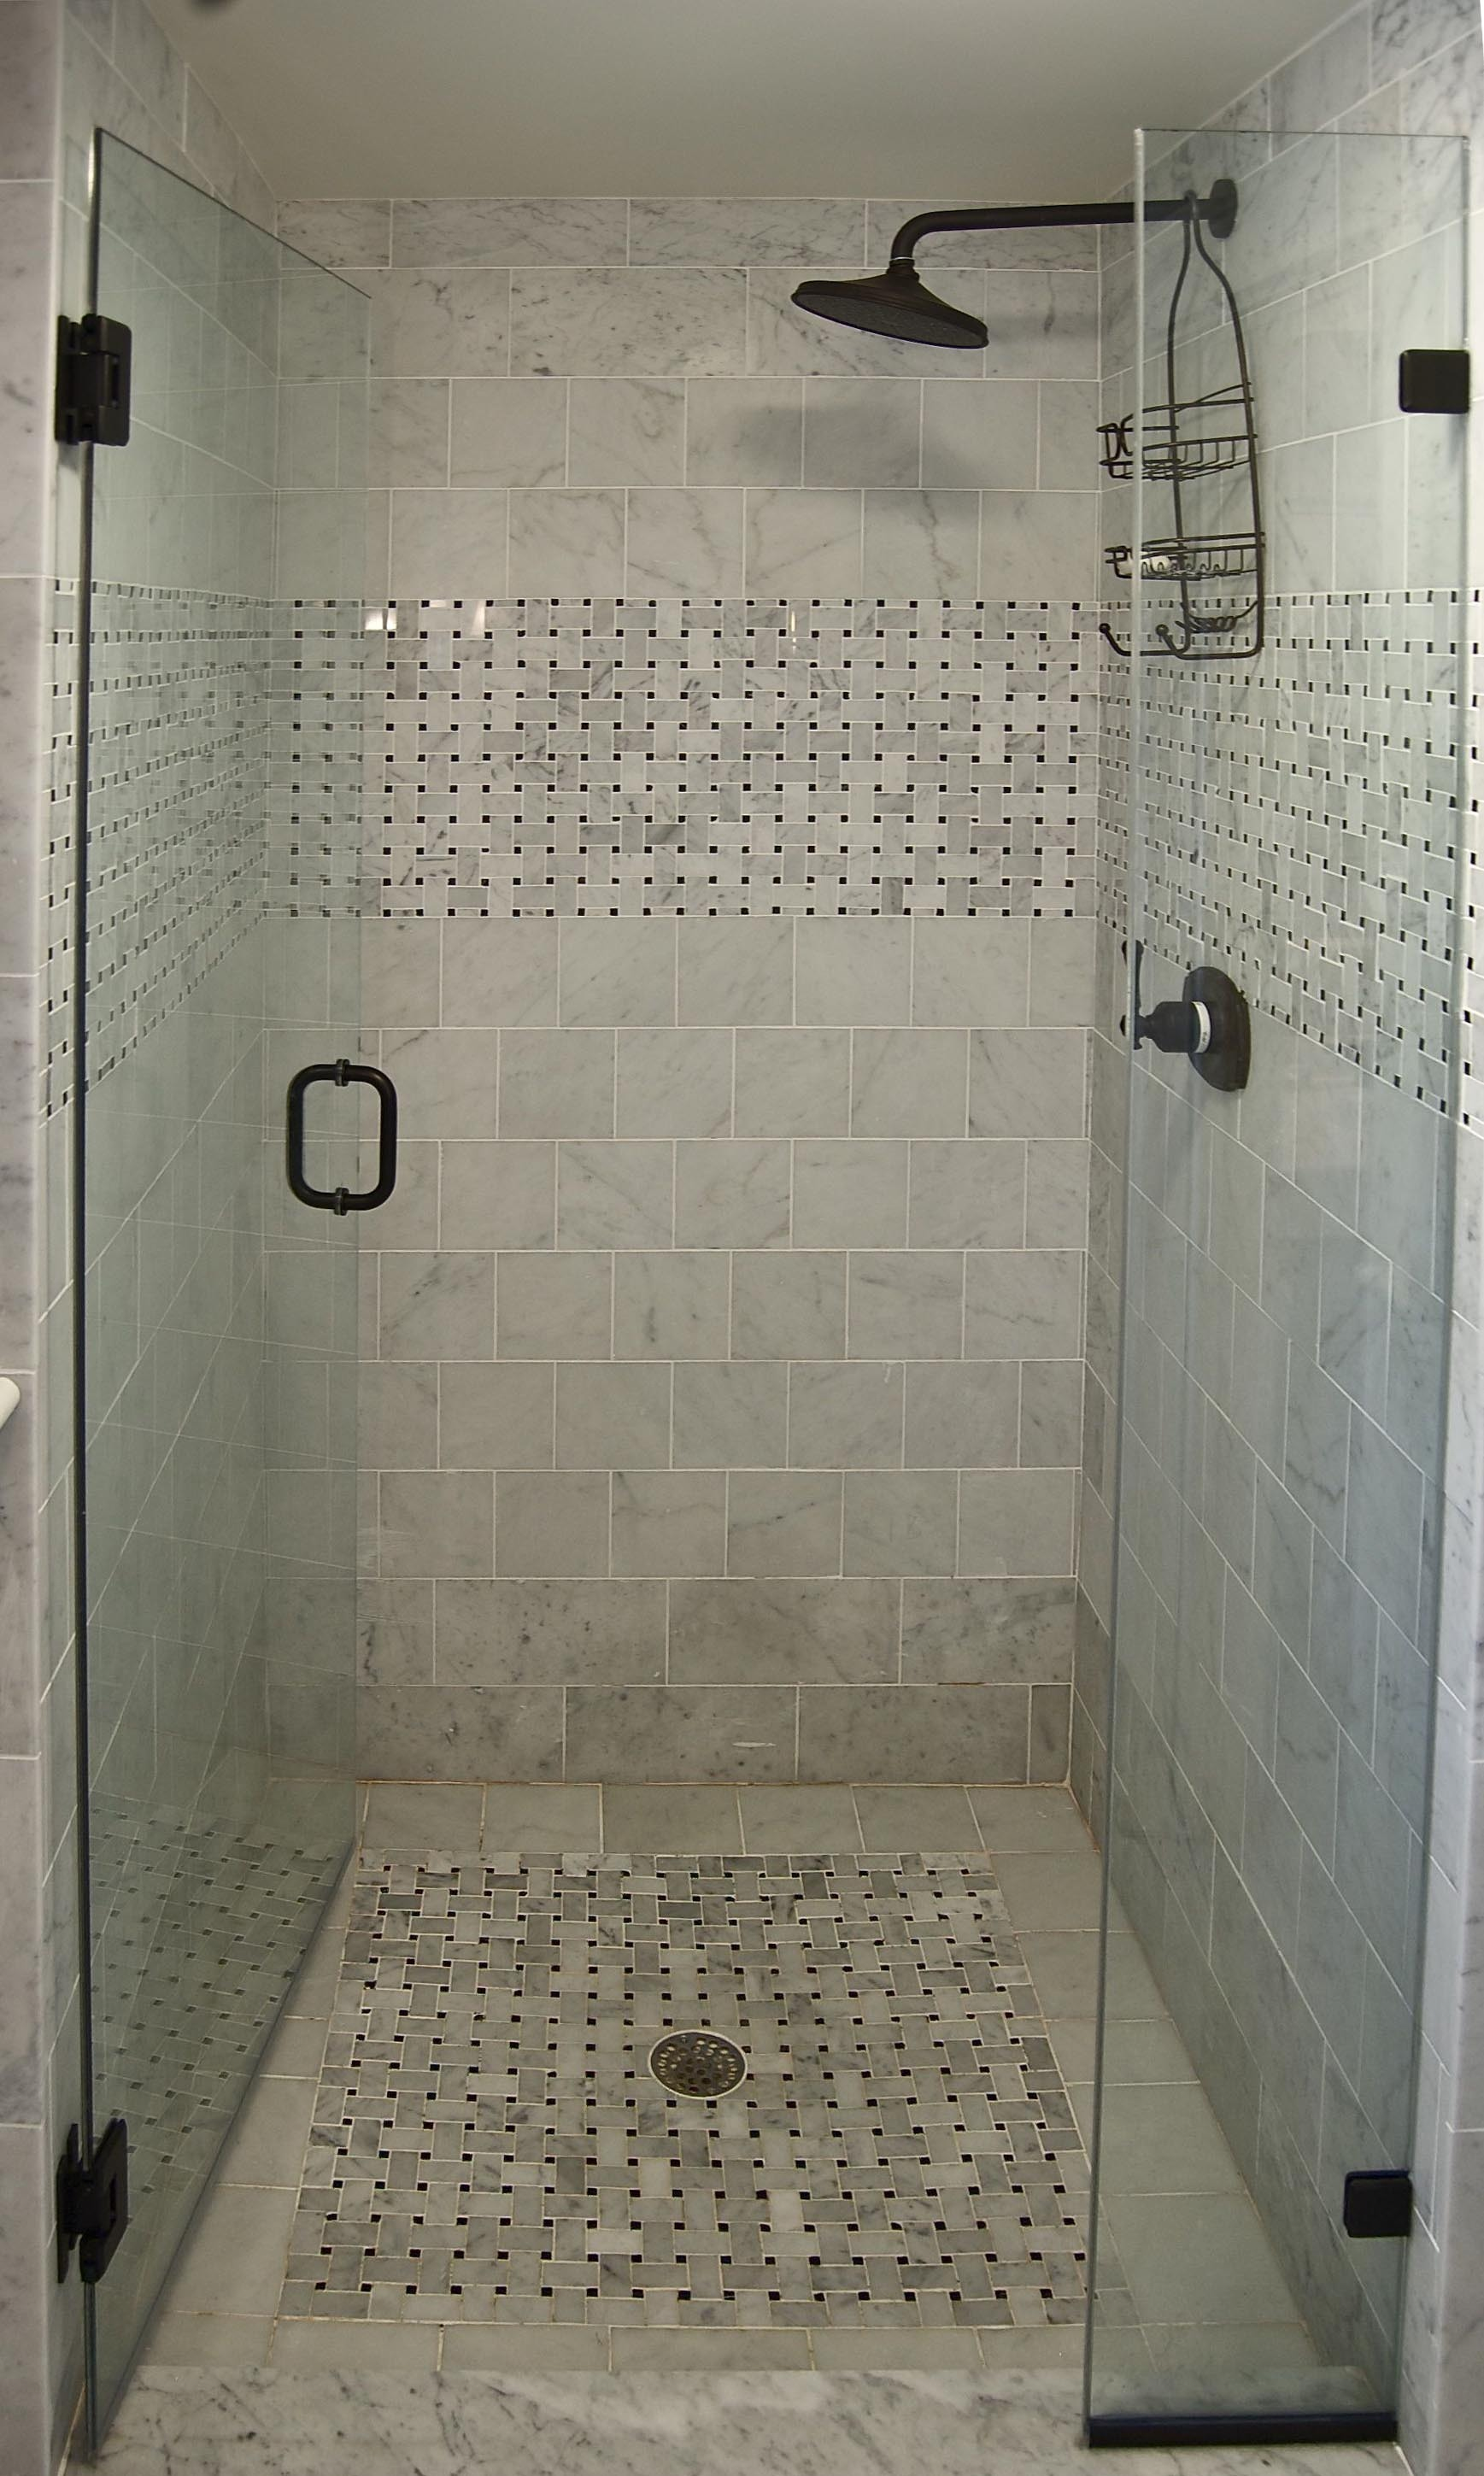 30 Shower tile ideas on a budget on Small Space Small Bathroom Tiles Design  id=63150